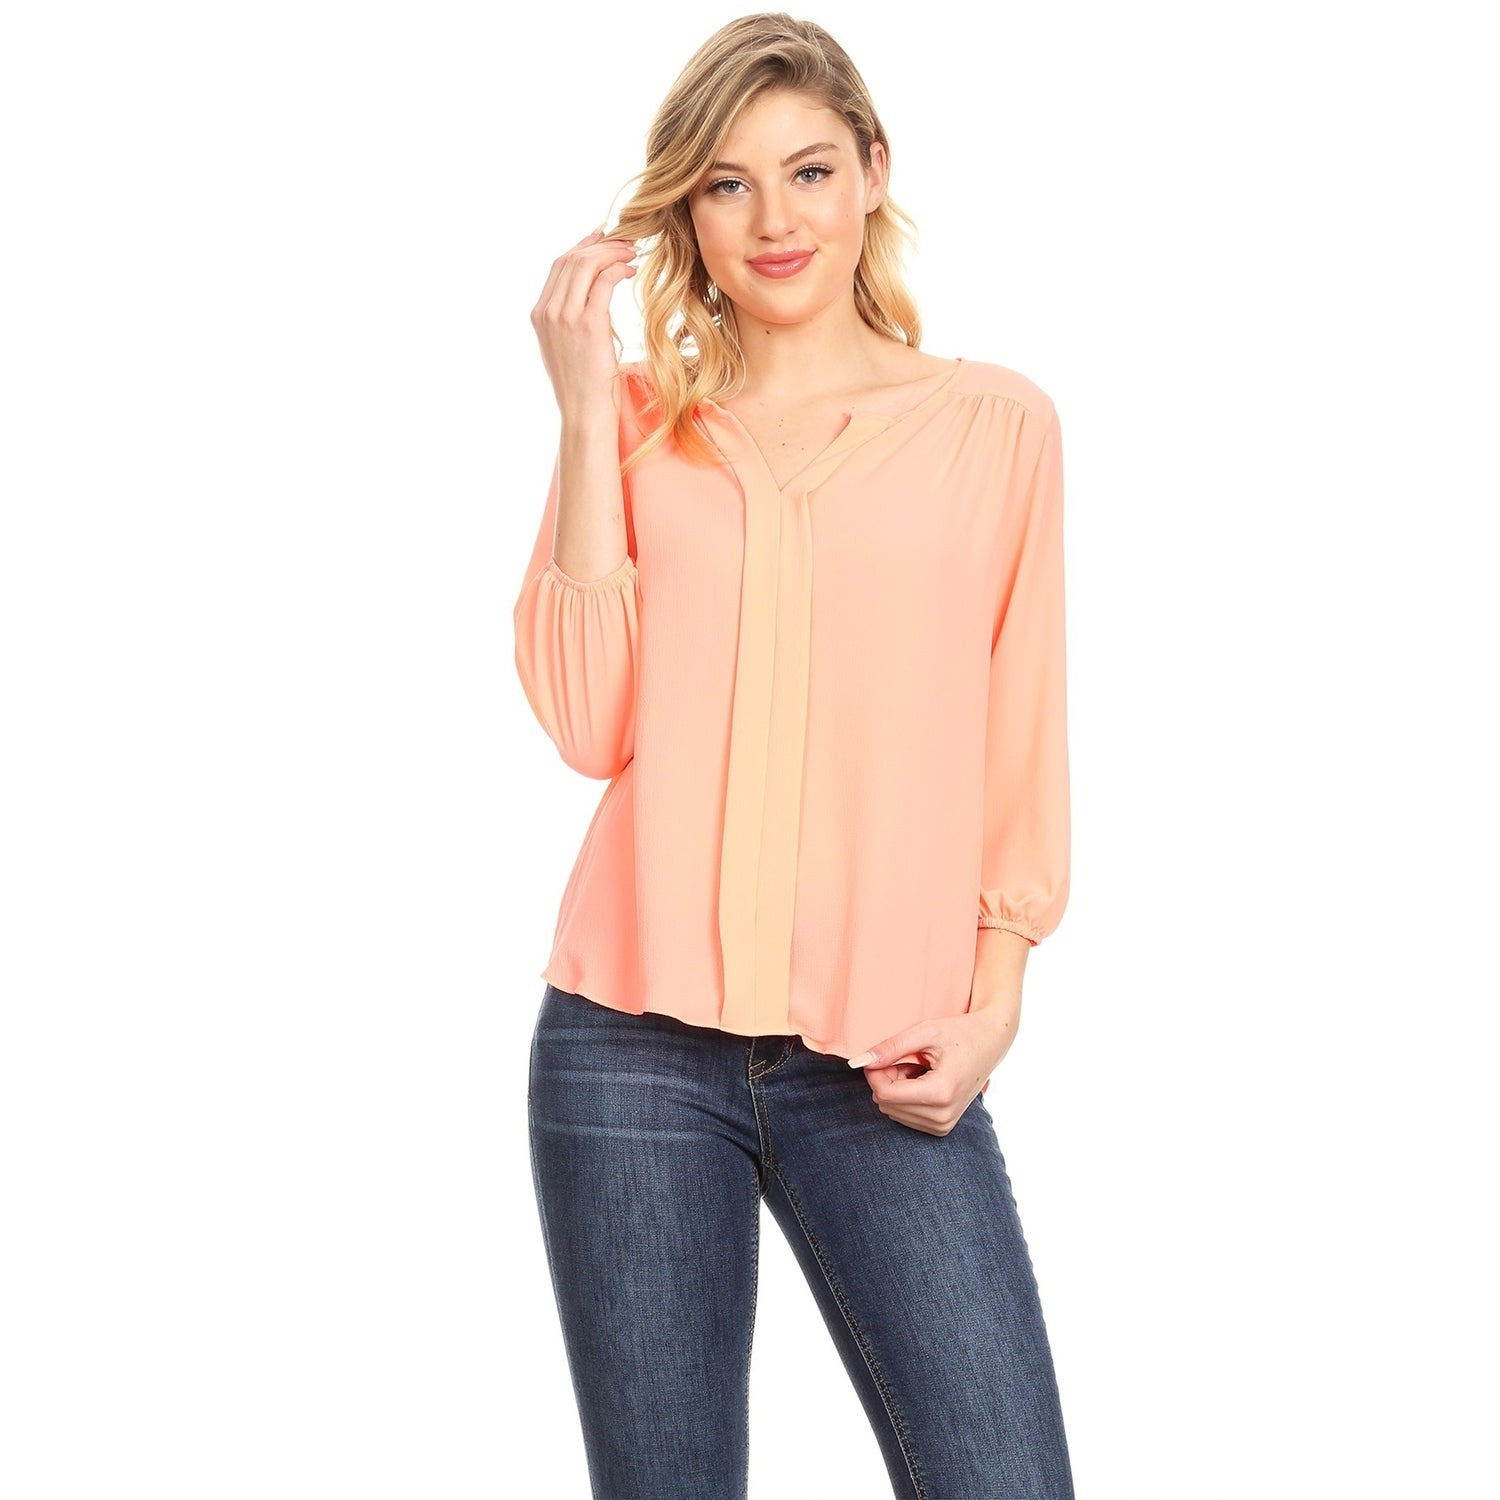 e97108501a8 Shop Women s Solid Casual Lightweight Three Quarter Bishop Sleeve Split  Neck Tunic Top Tee Blouse - Free Shipping On Orders Over  45 -  Overstock.com - ...